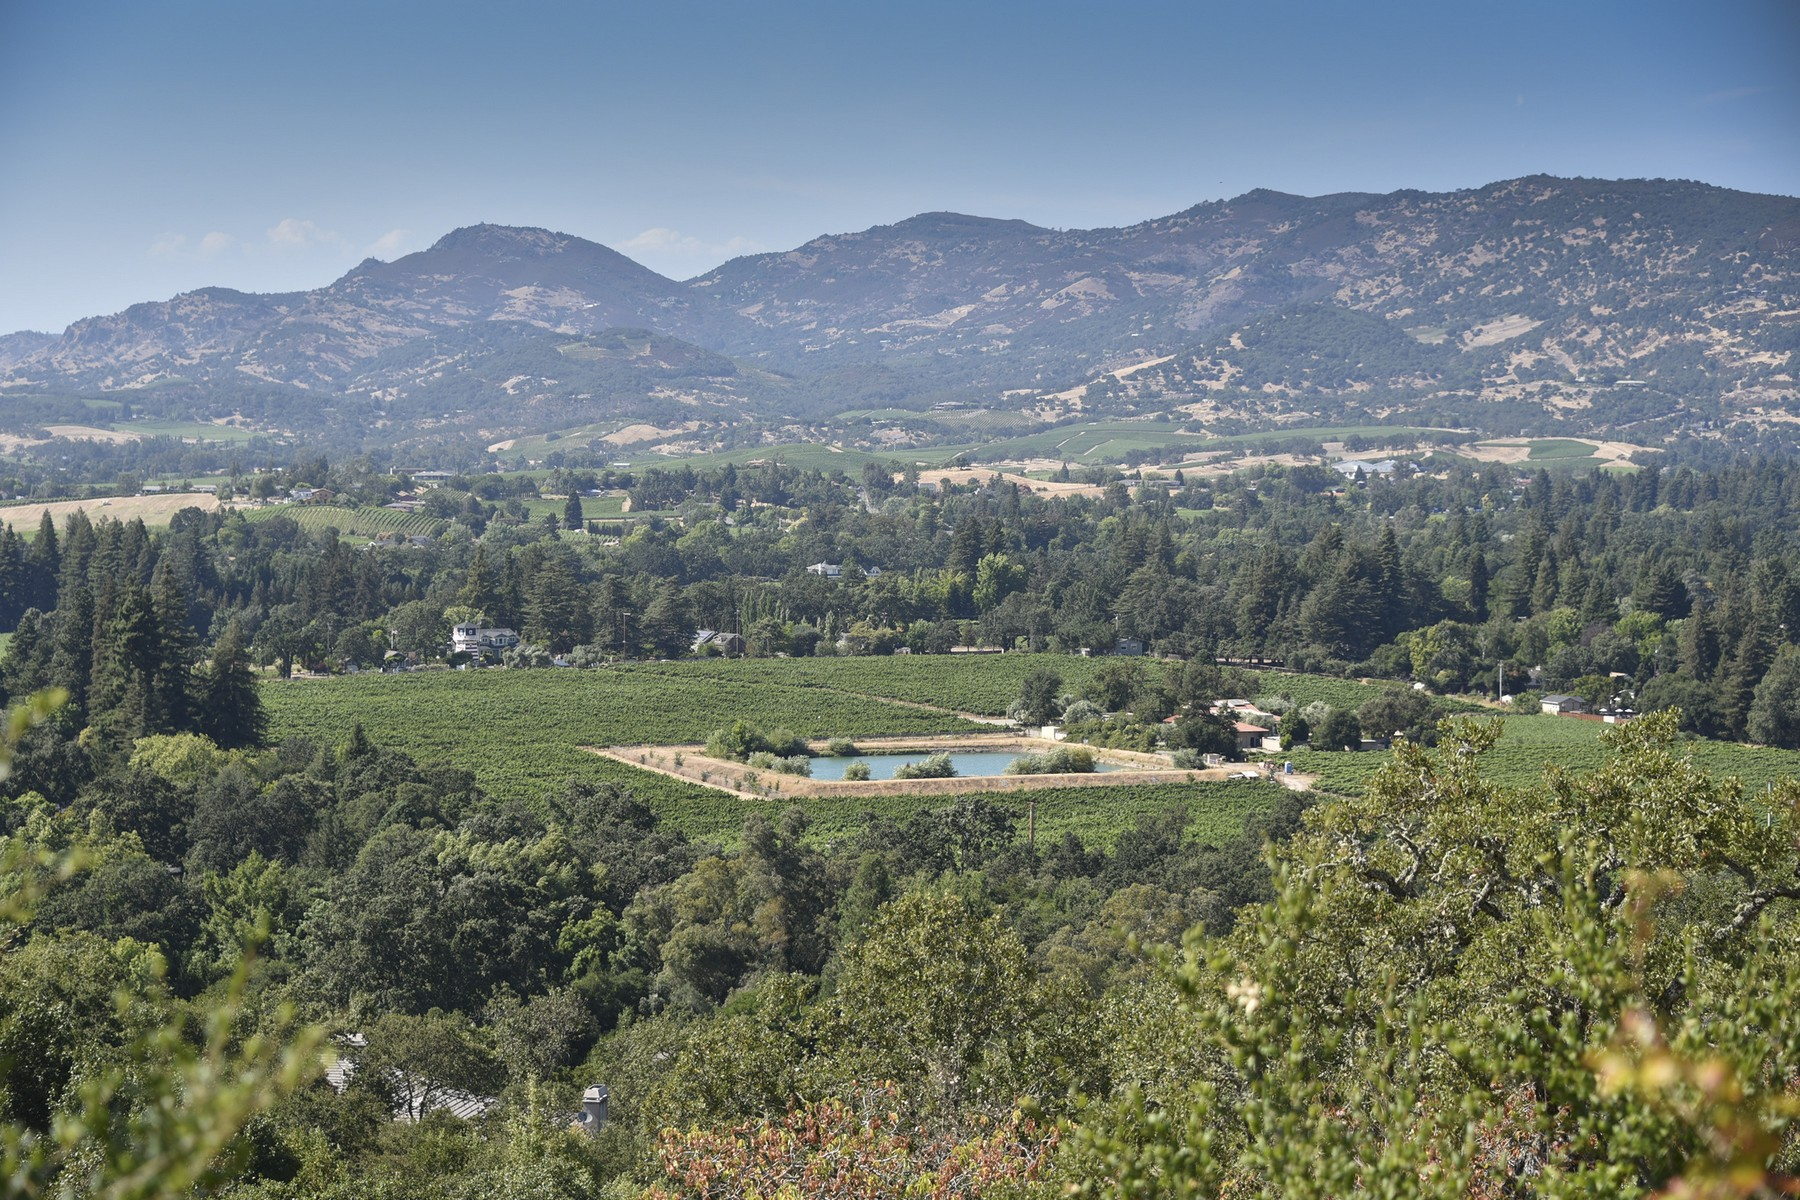 Land for Sale at 34 Old Coach Rd, Napa, CA 94558 34 Old Coach Rd Napa, California 94558 United States